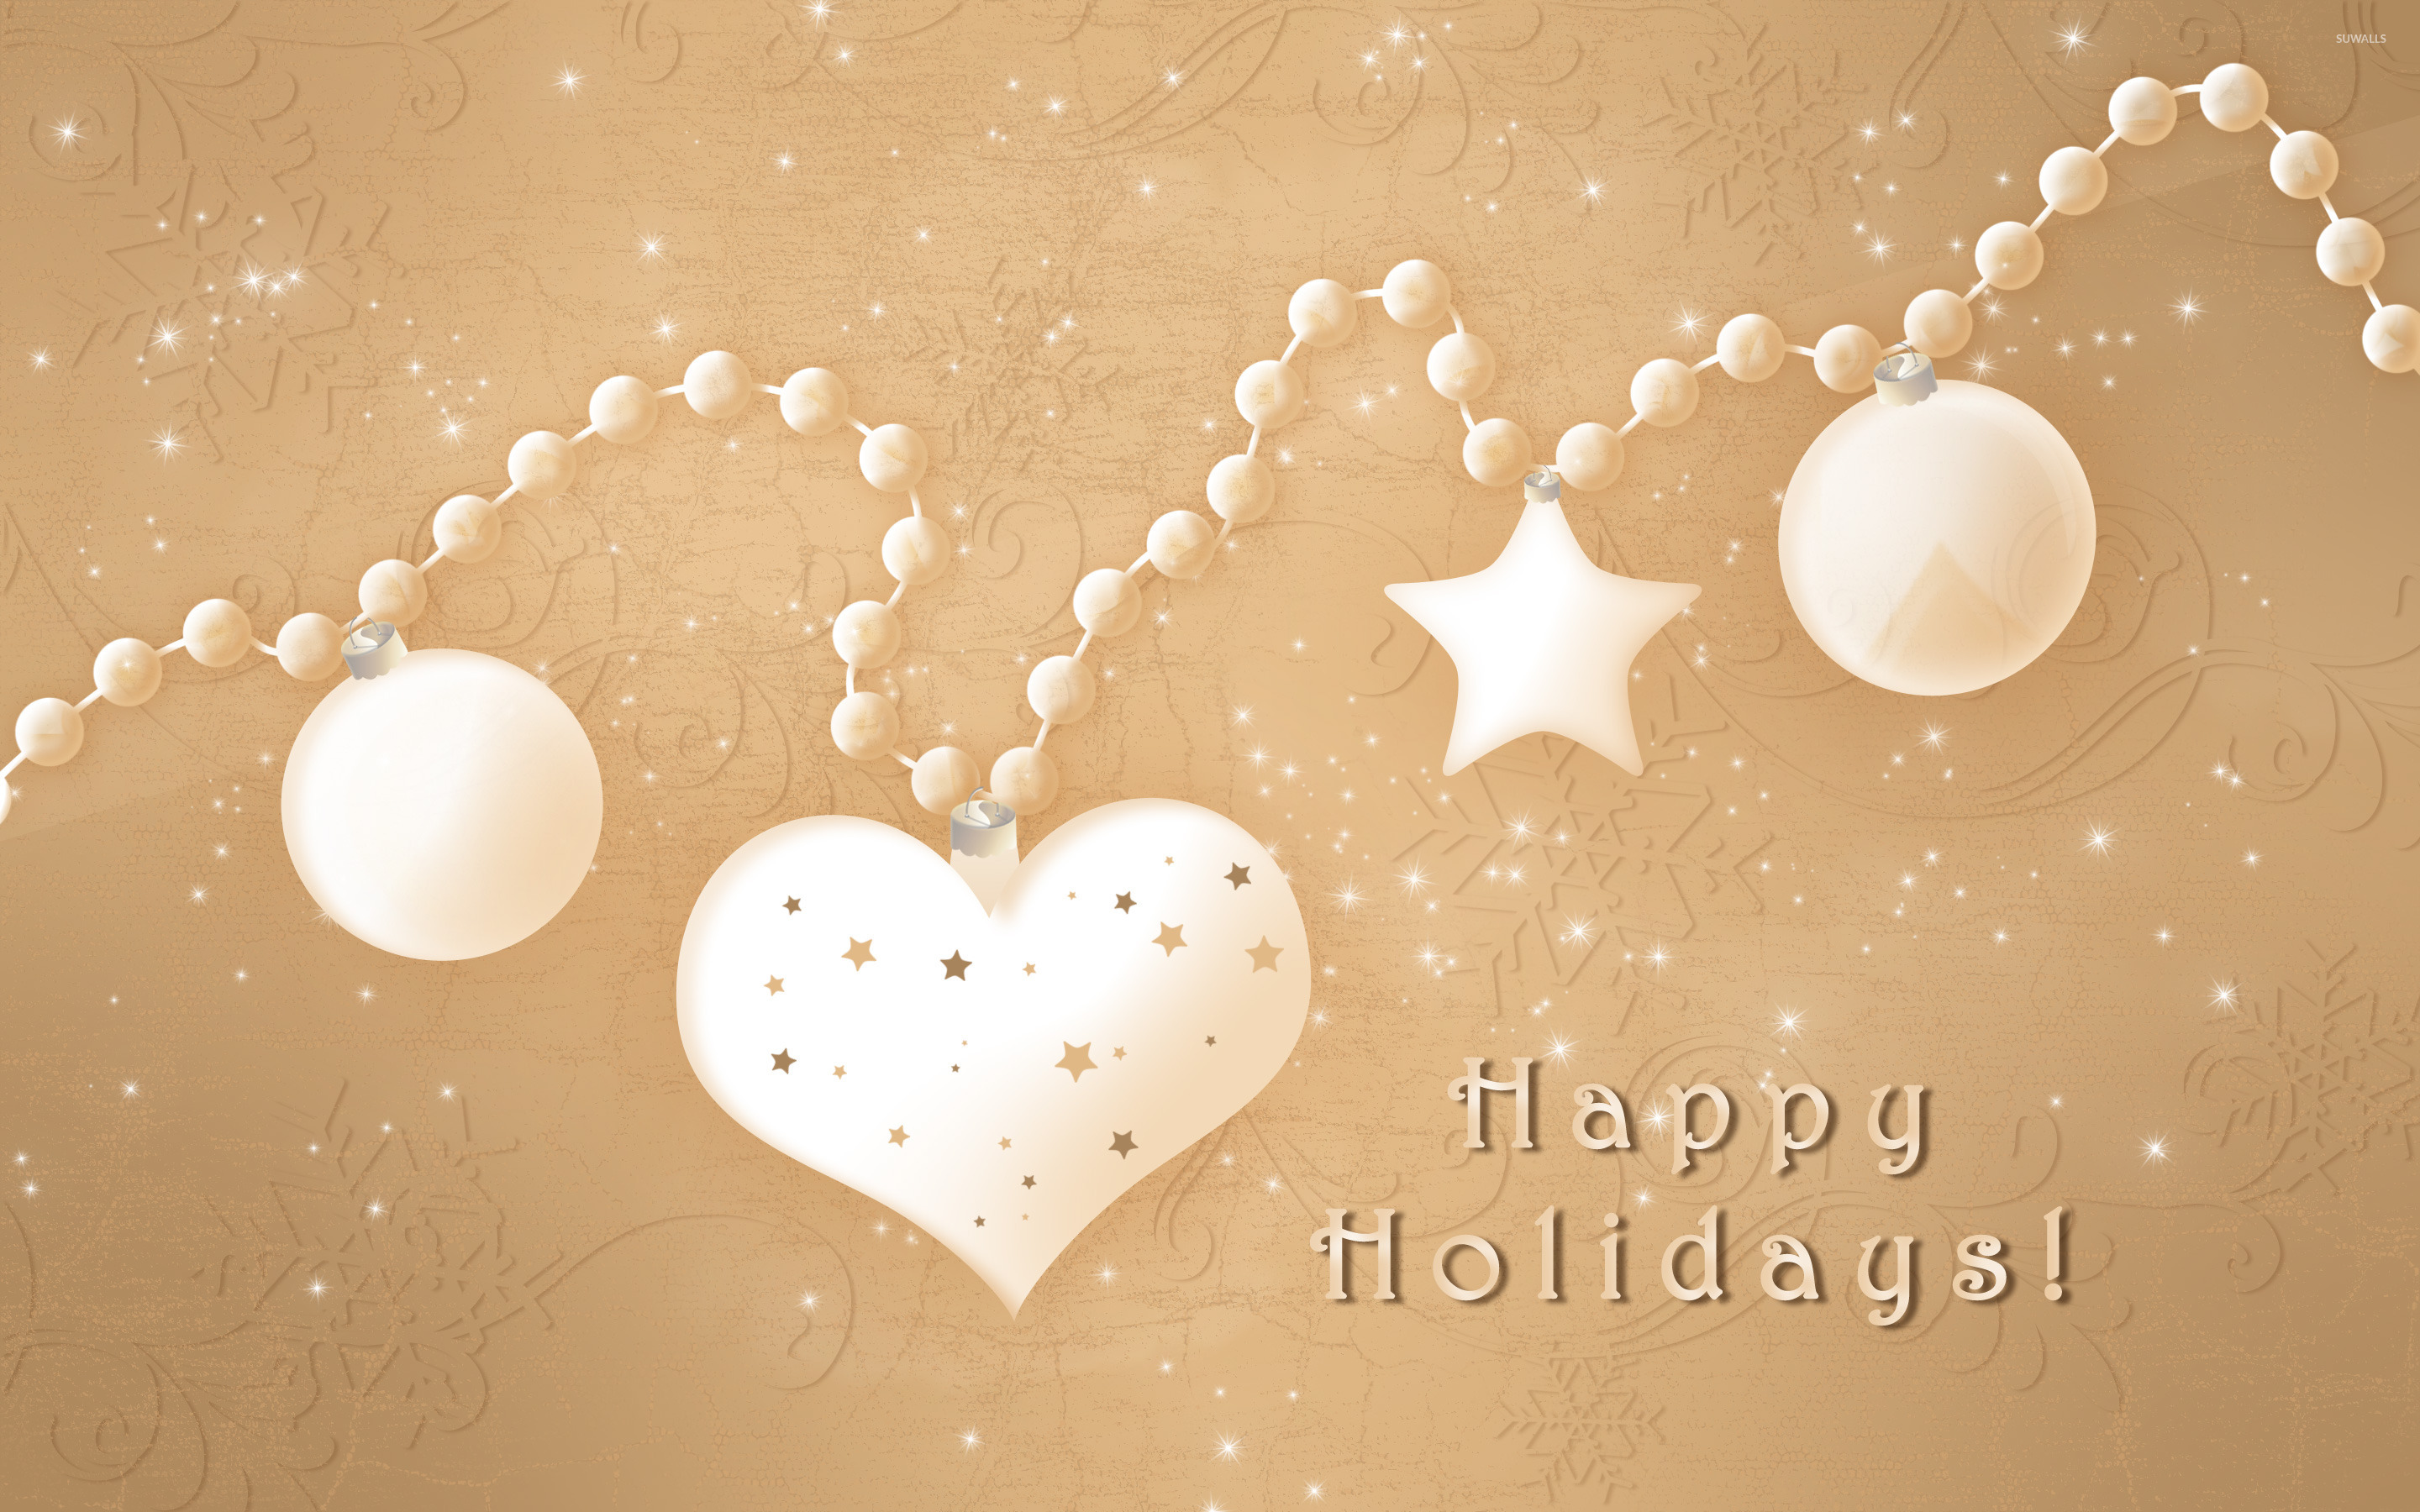 happy holidays [6] wallpaper - holiday wallpapers - #25509